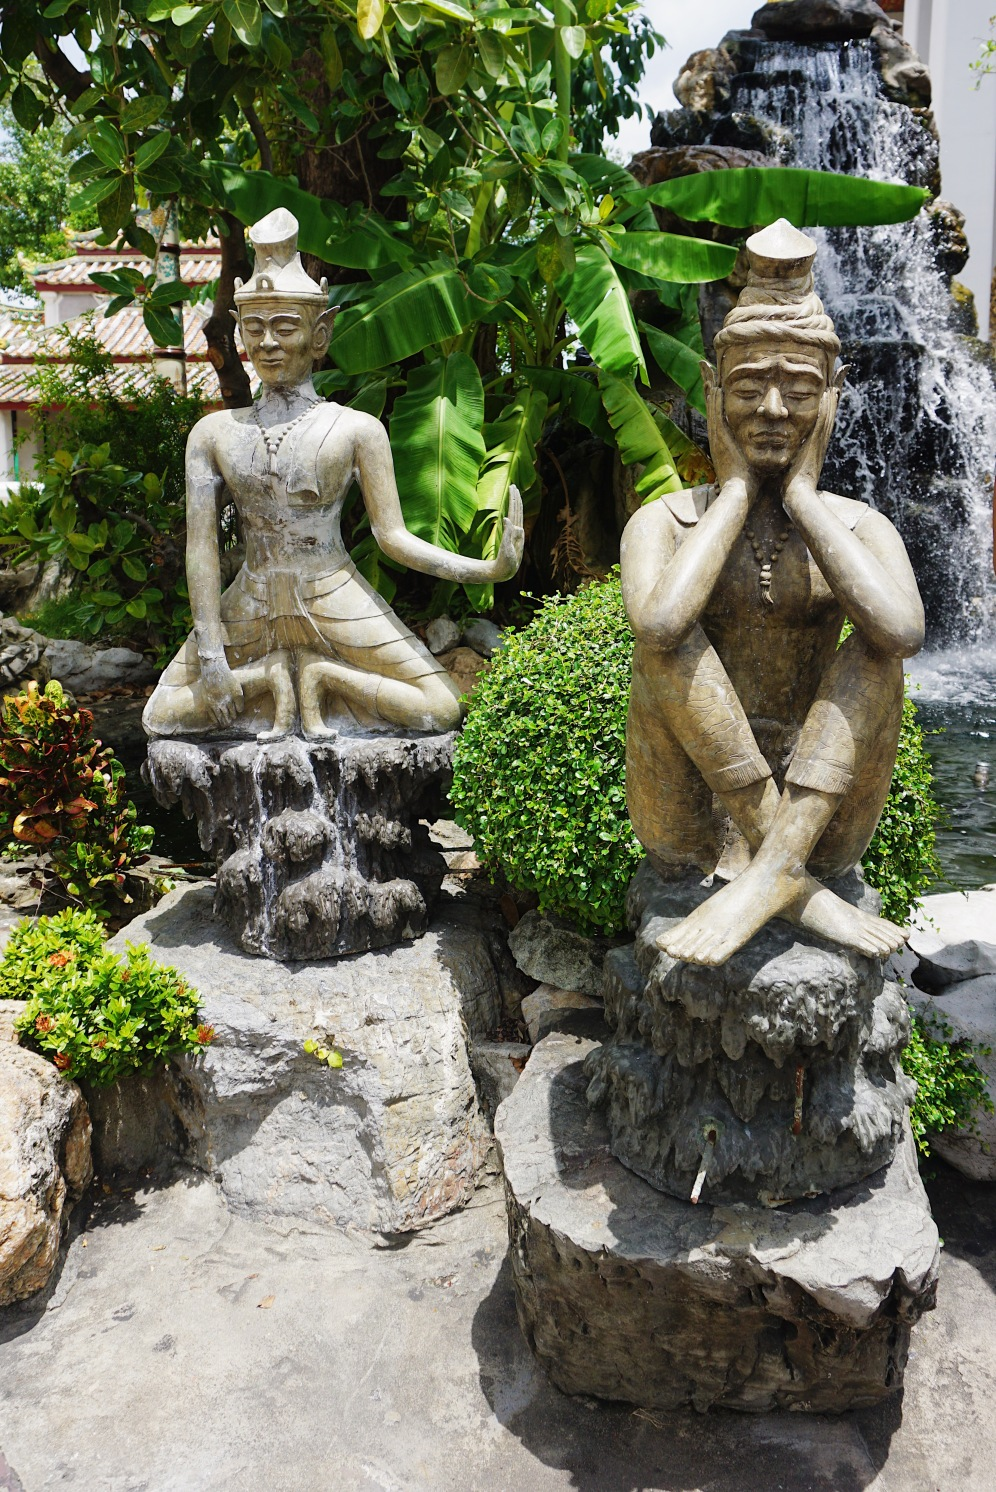 The Chinese statues in the garden of Wat Pho Complex. (Picture courtesy of my friend, Carlo Enriquez)